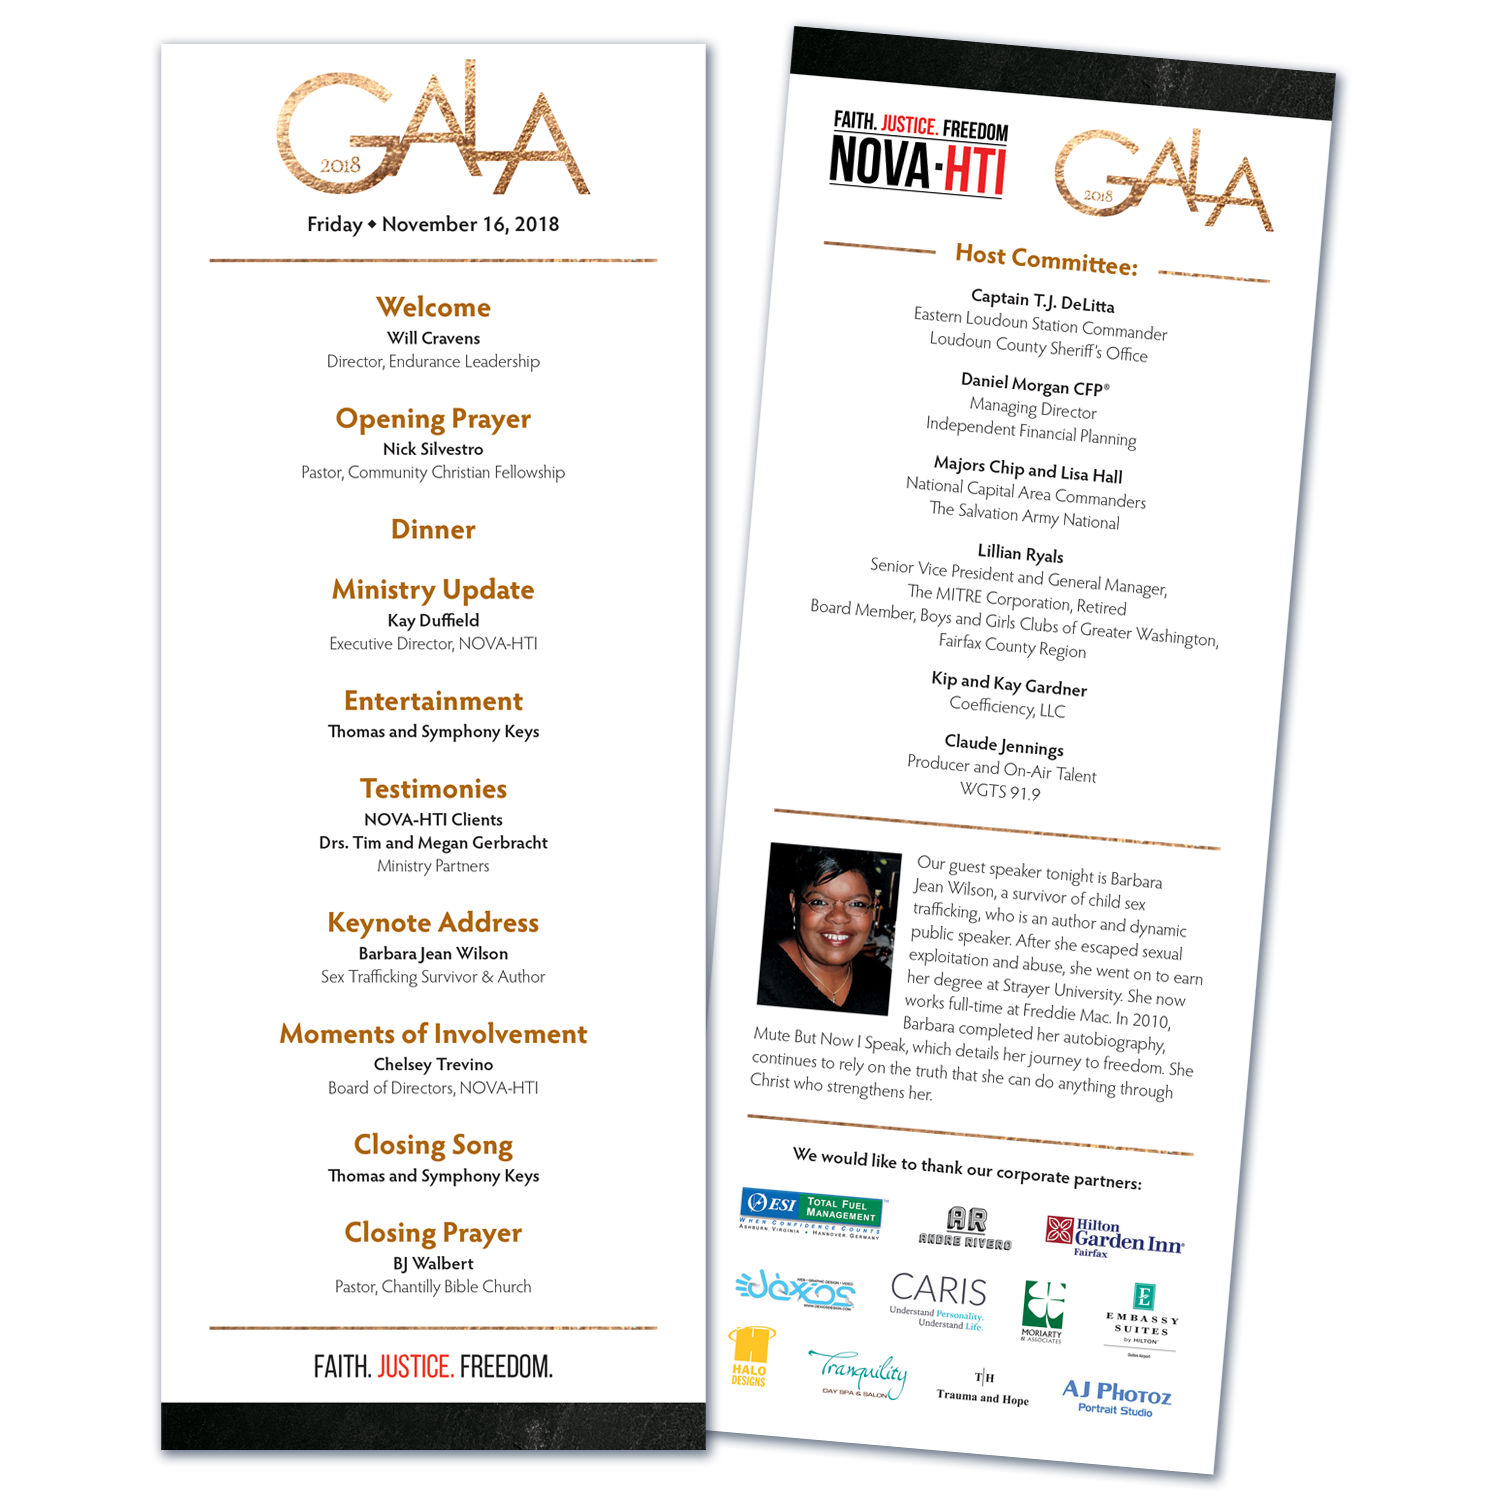 NOVA-HTI-Gala2018-Program.png